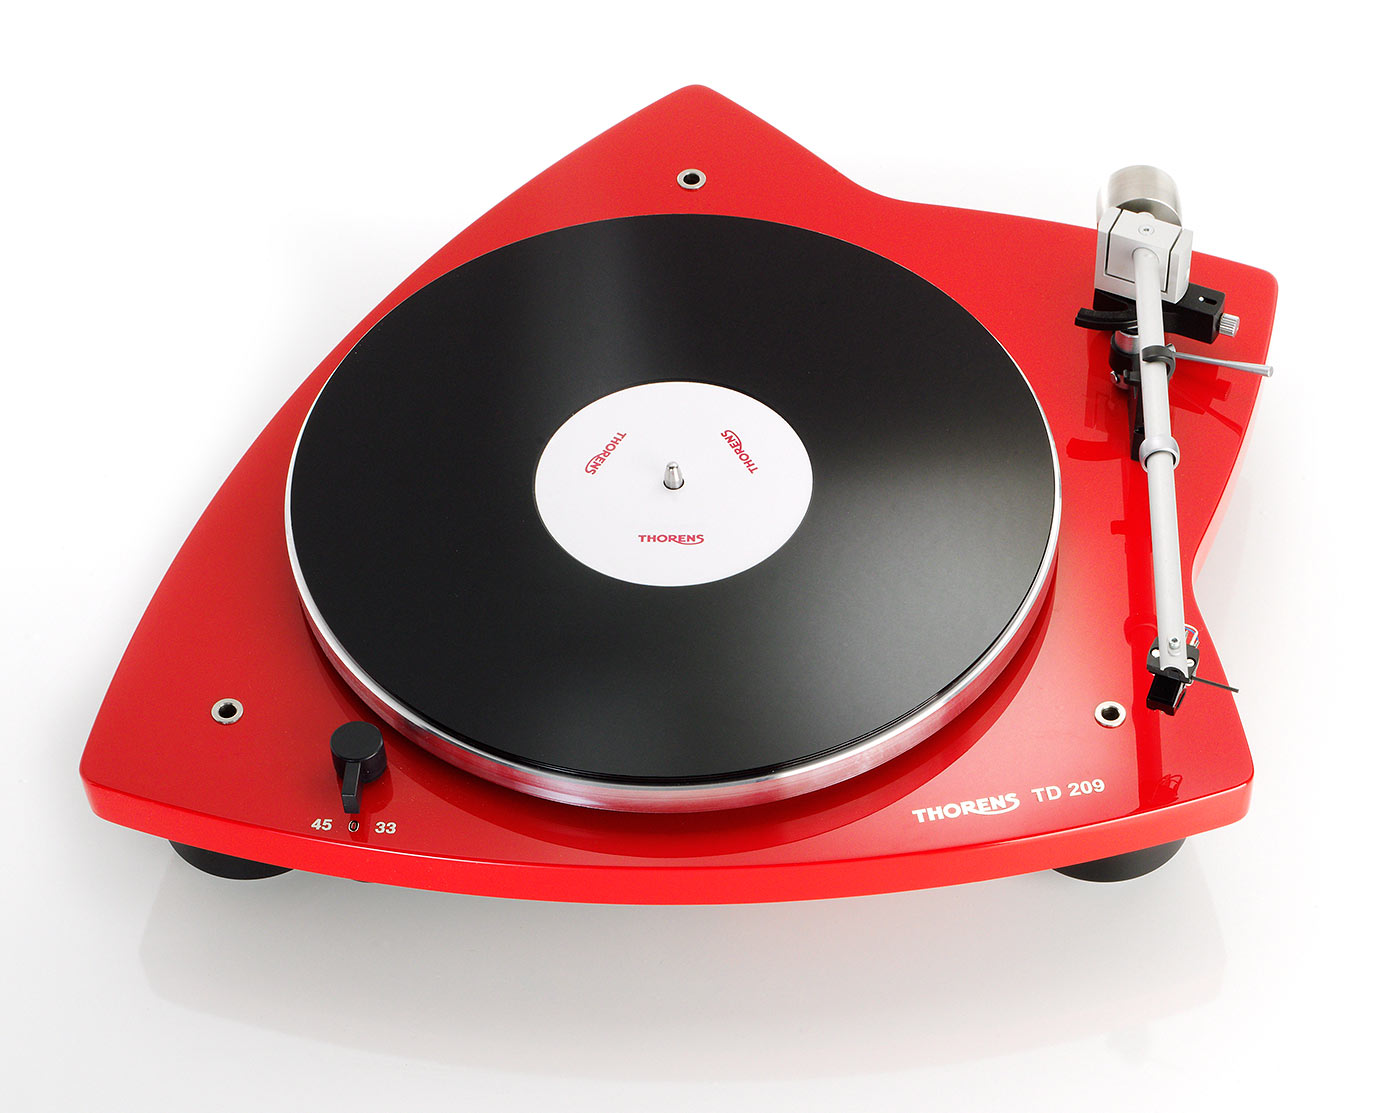 Thorens TD 209 highgloss red